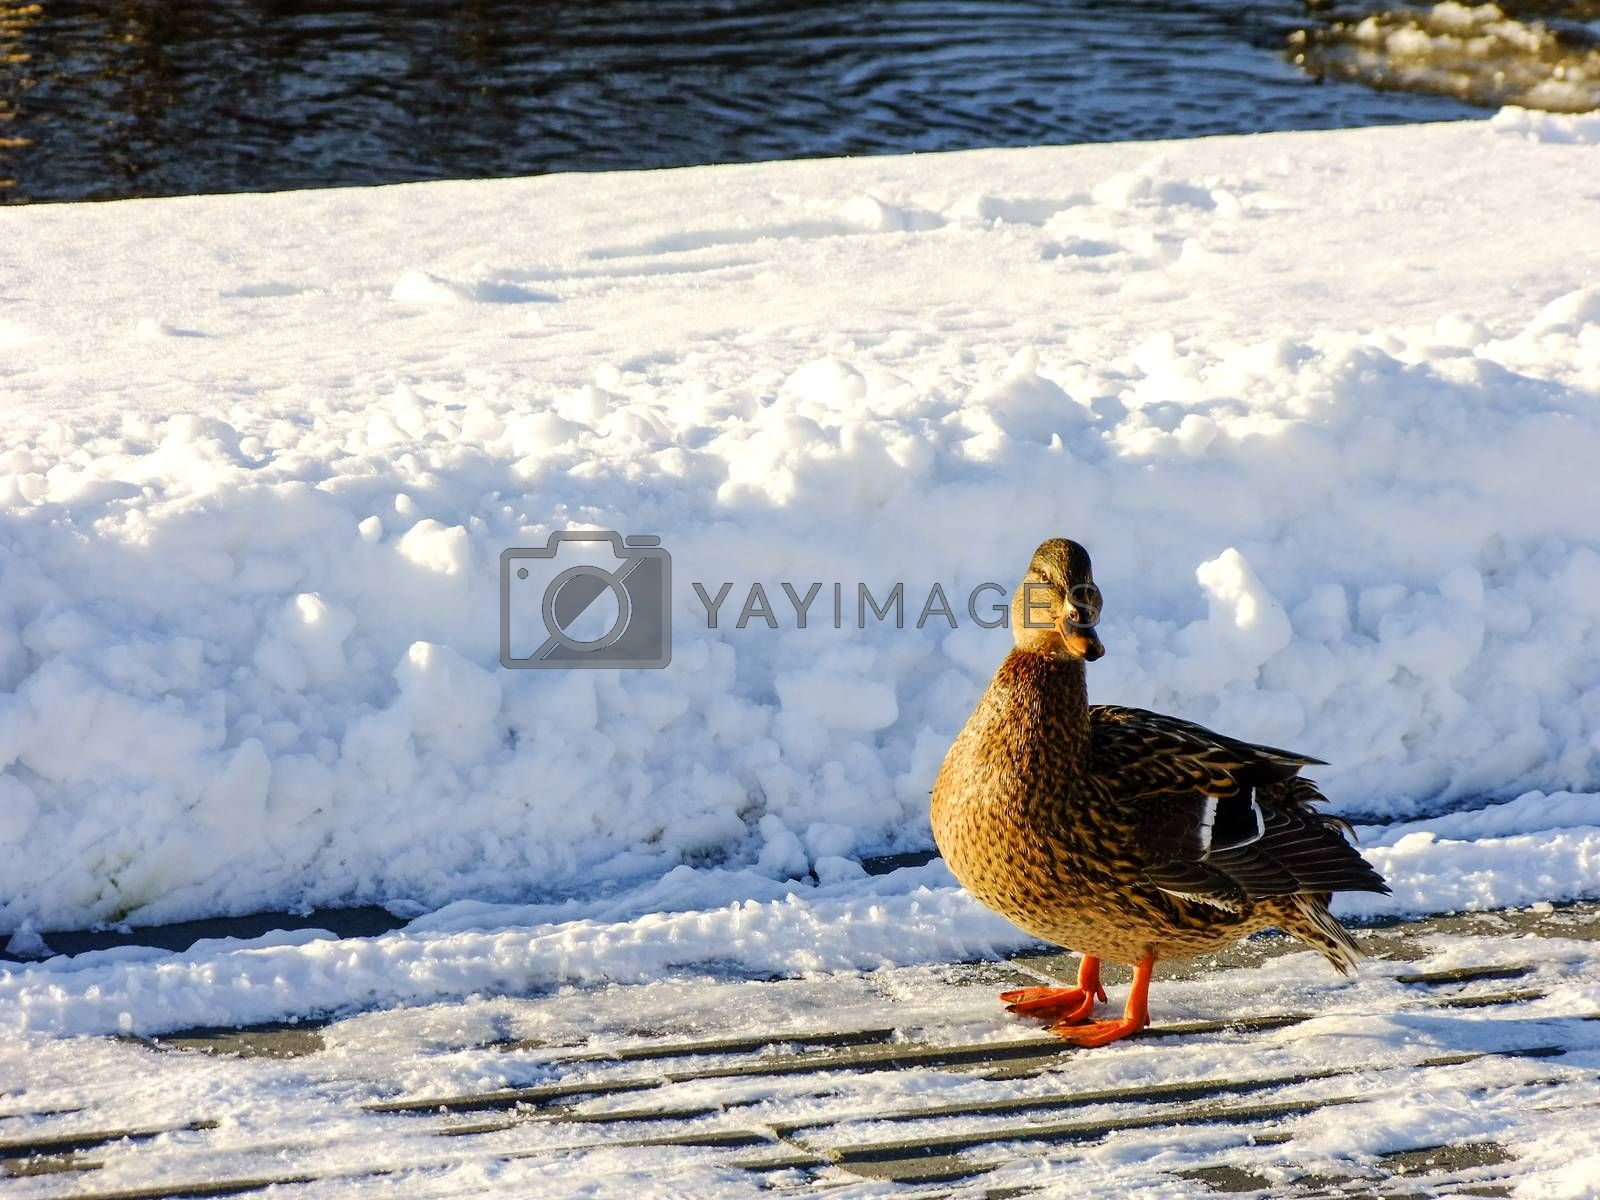 Duck looking to the Screen and standing on the snowy cold Winter Shore